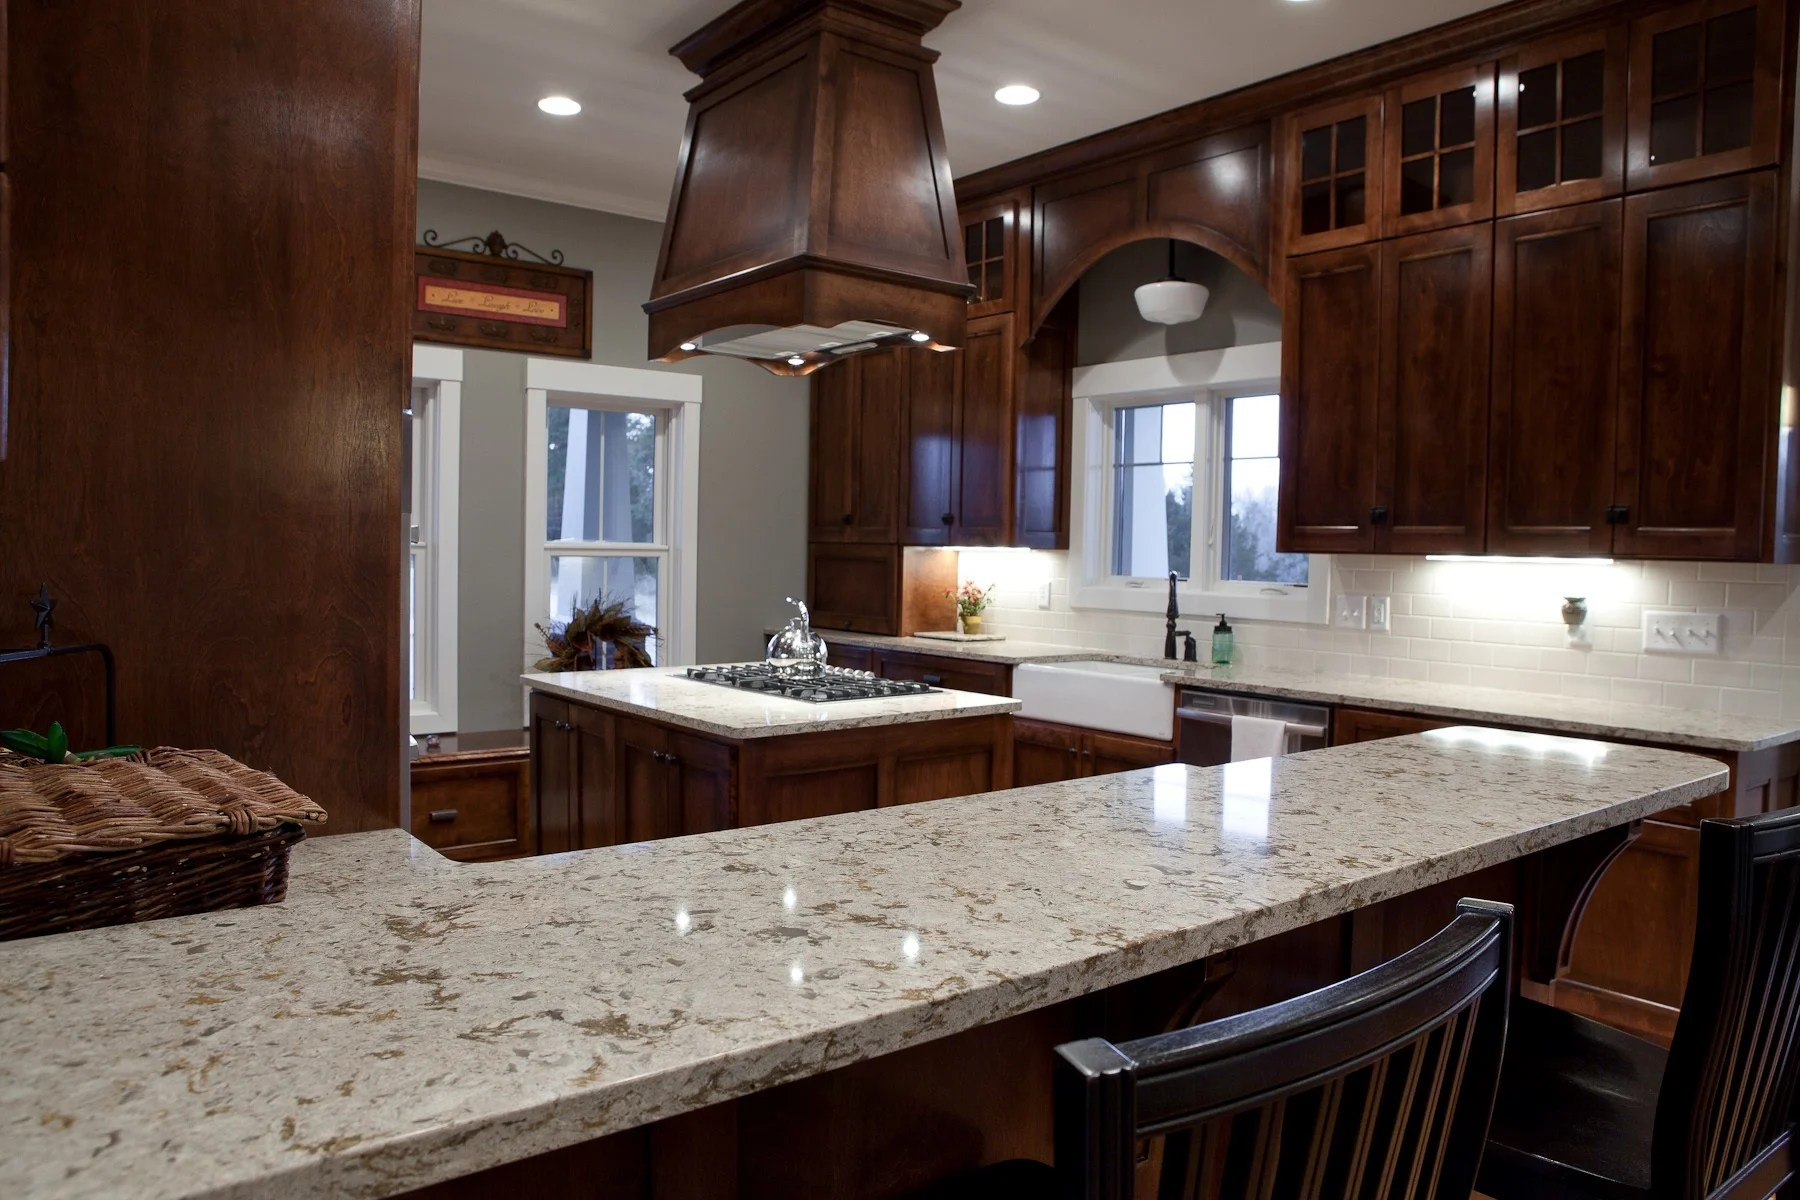 18 Kitchen Countertop Options and Ideas for 2019